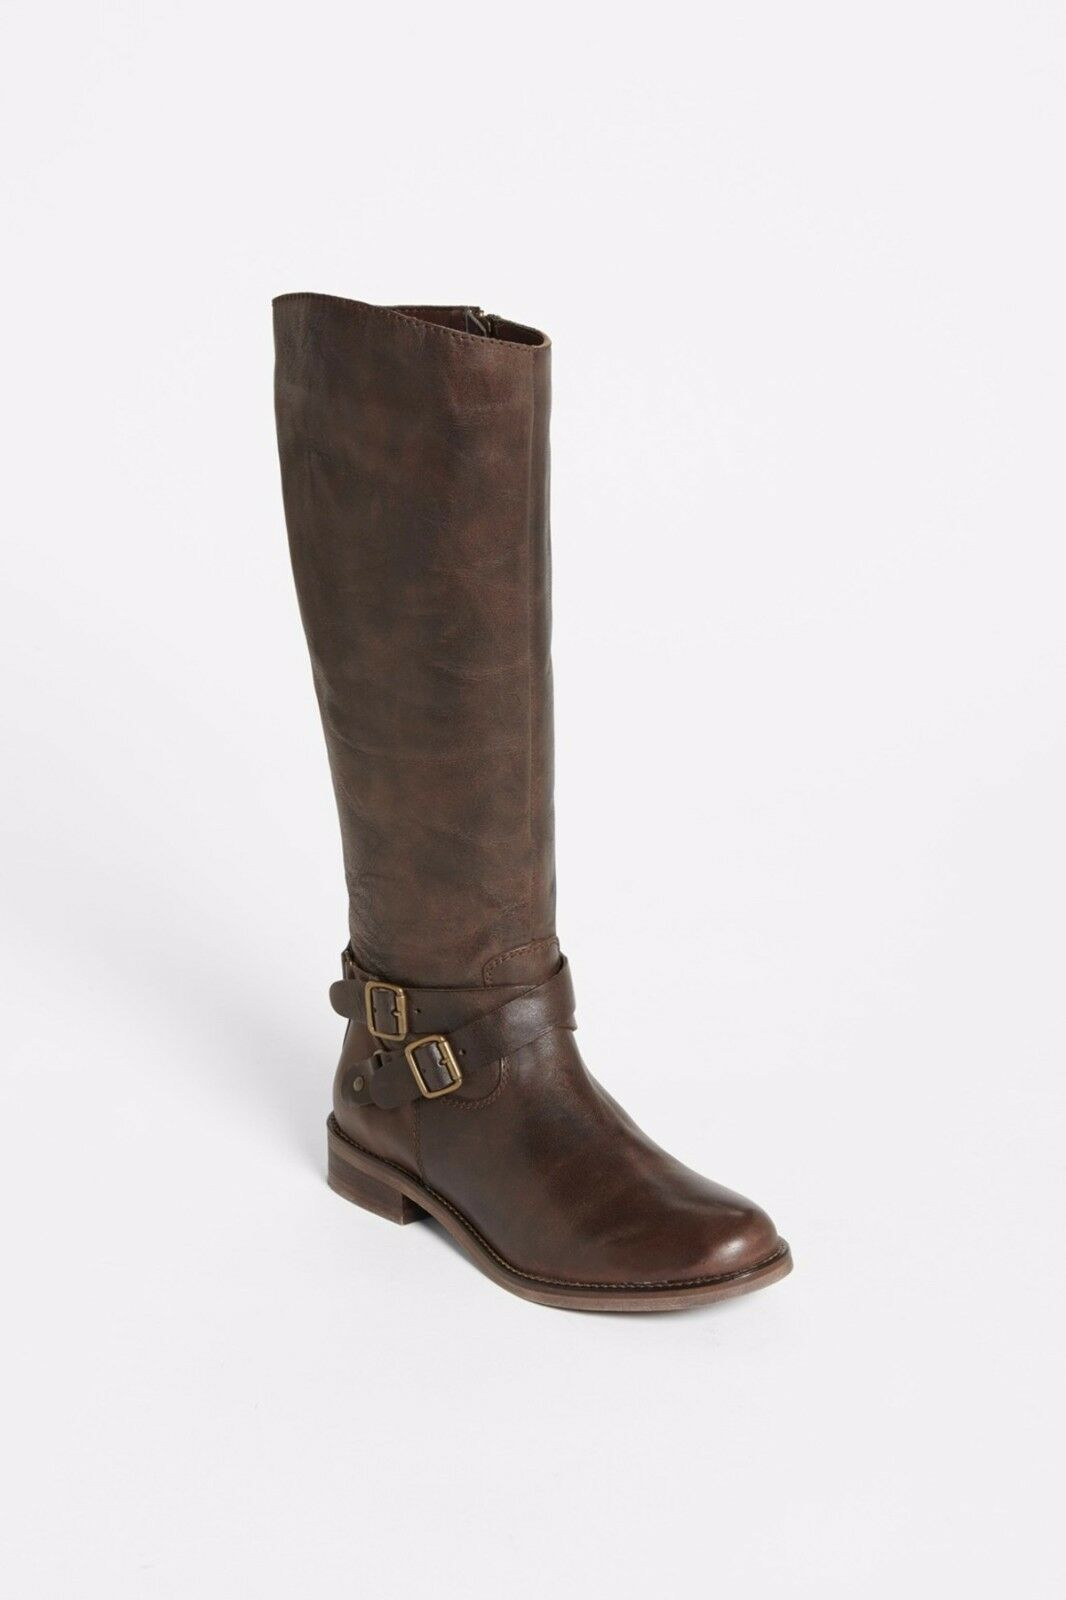 $150 NWT Hinge Devin distressed / burnished leather tall riding boot BROWN 5.5